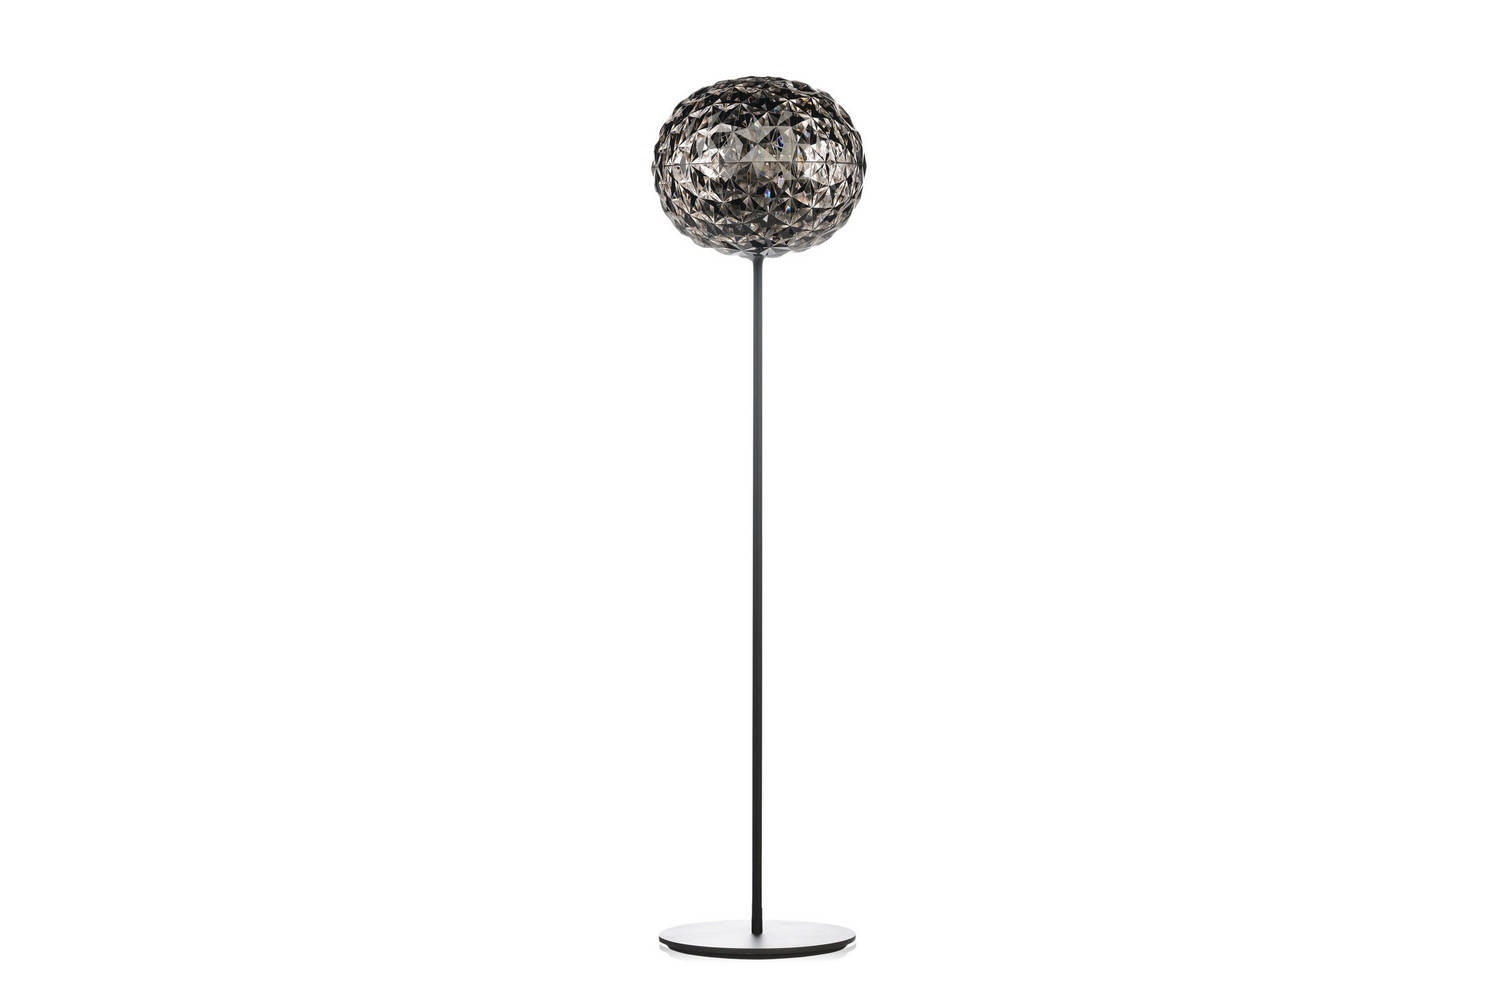 Planet Floor Lamp by Tokujin Yoshioka for Kartell